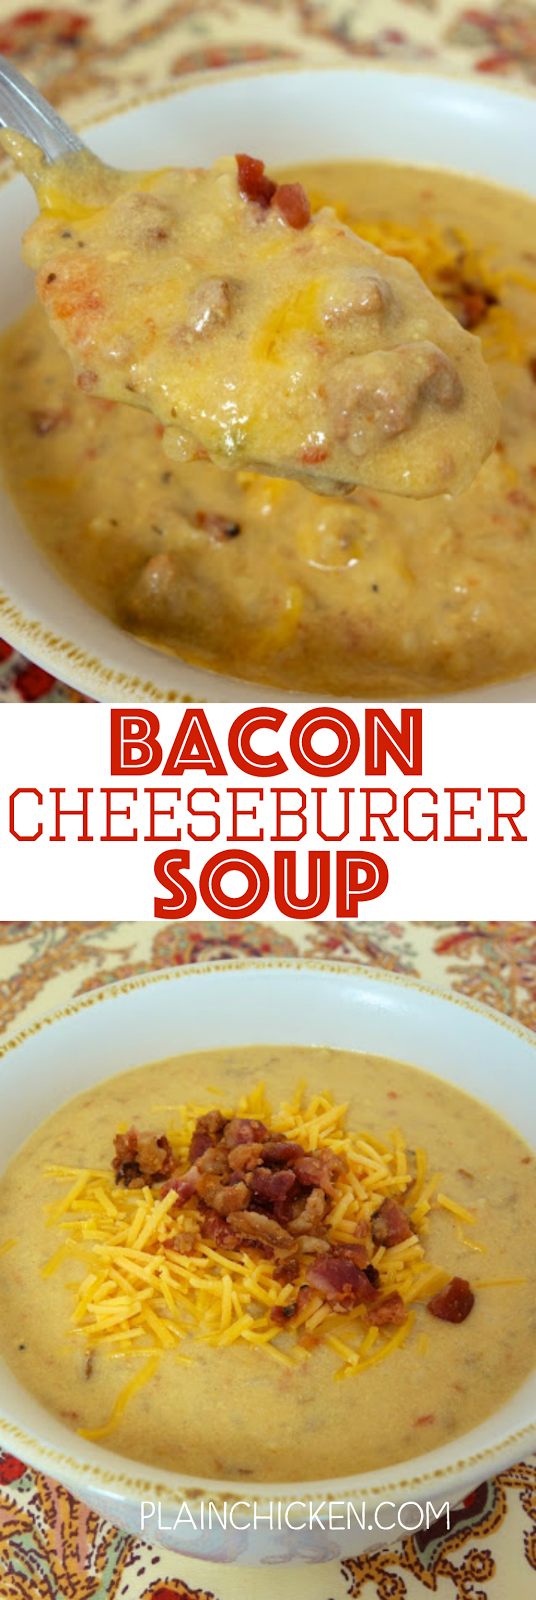 Slow Cooker Bacon Cheeseburger Soup - frozen hash browns, hamburger, cheese bacon, cheese and chicken broth - This is the most requested soup for dinner in our house!